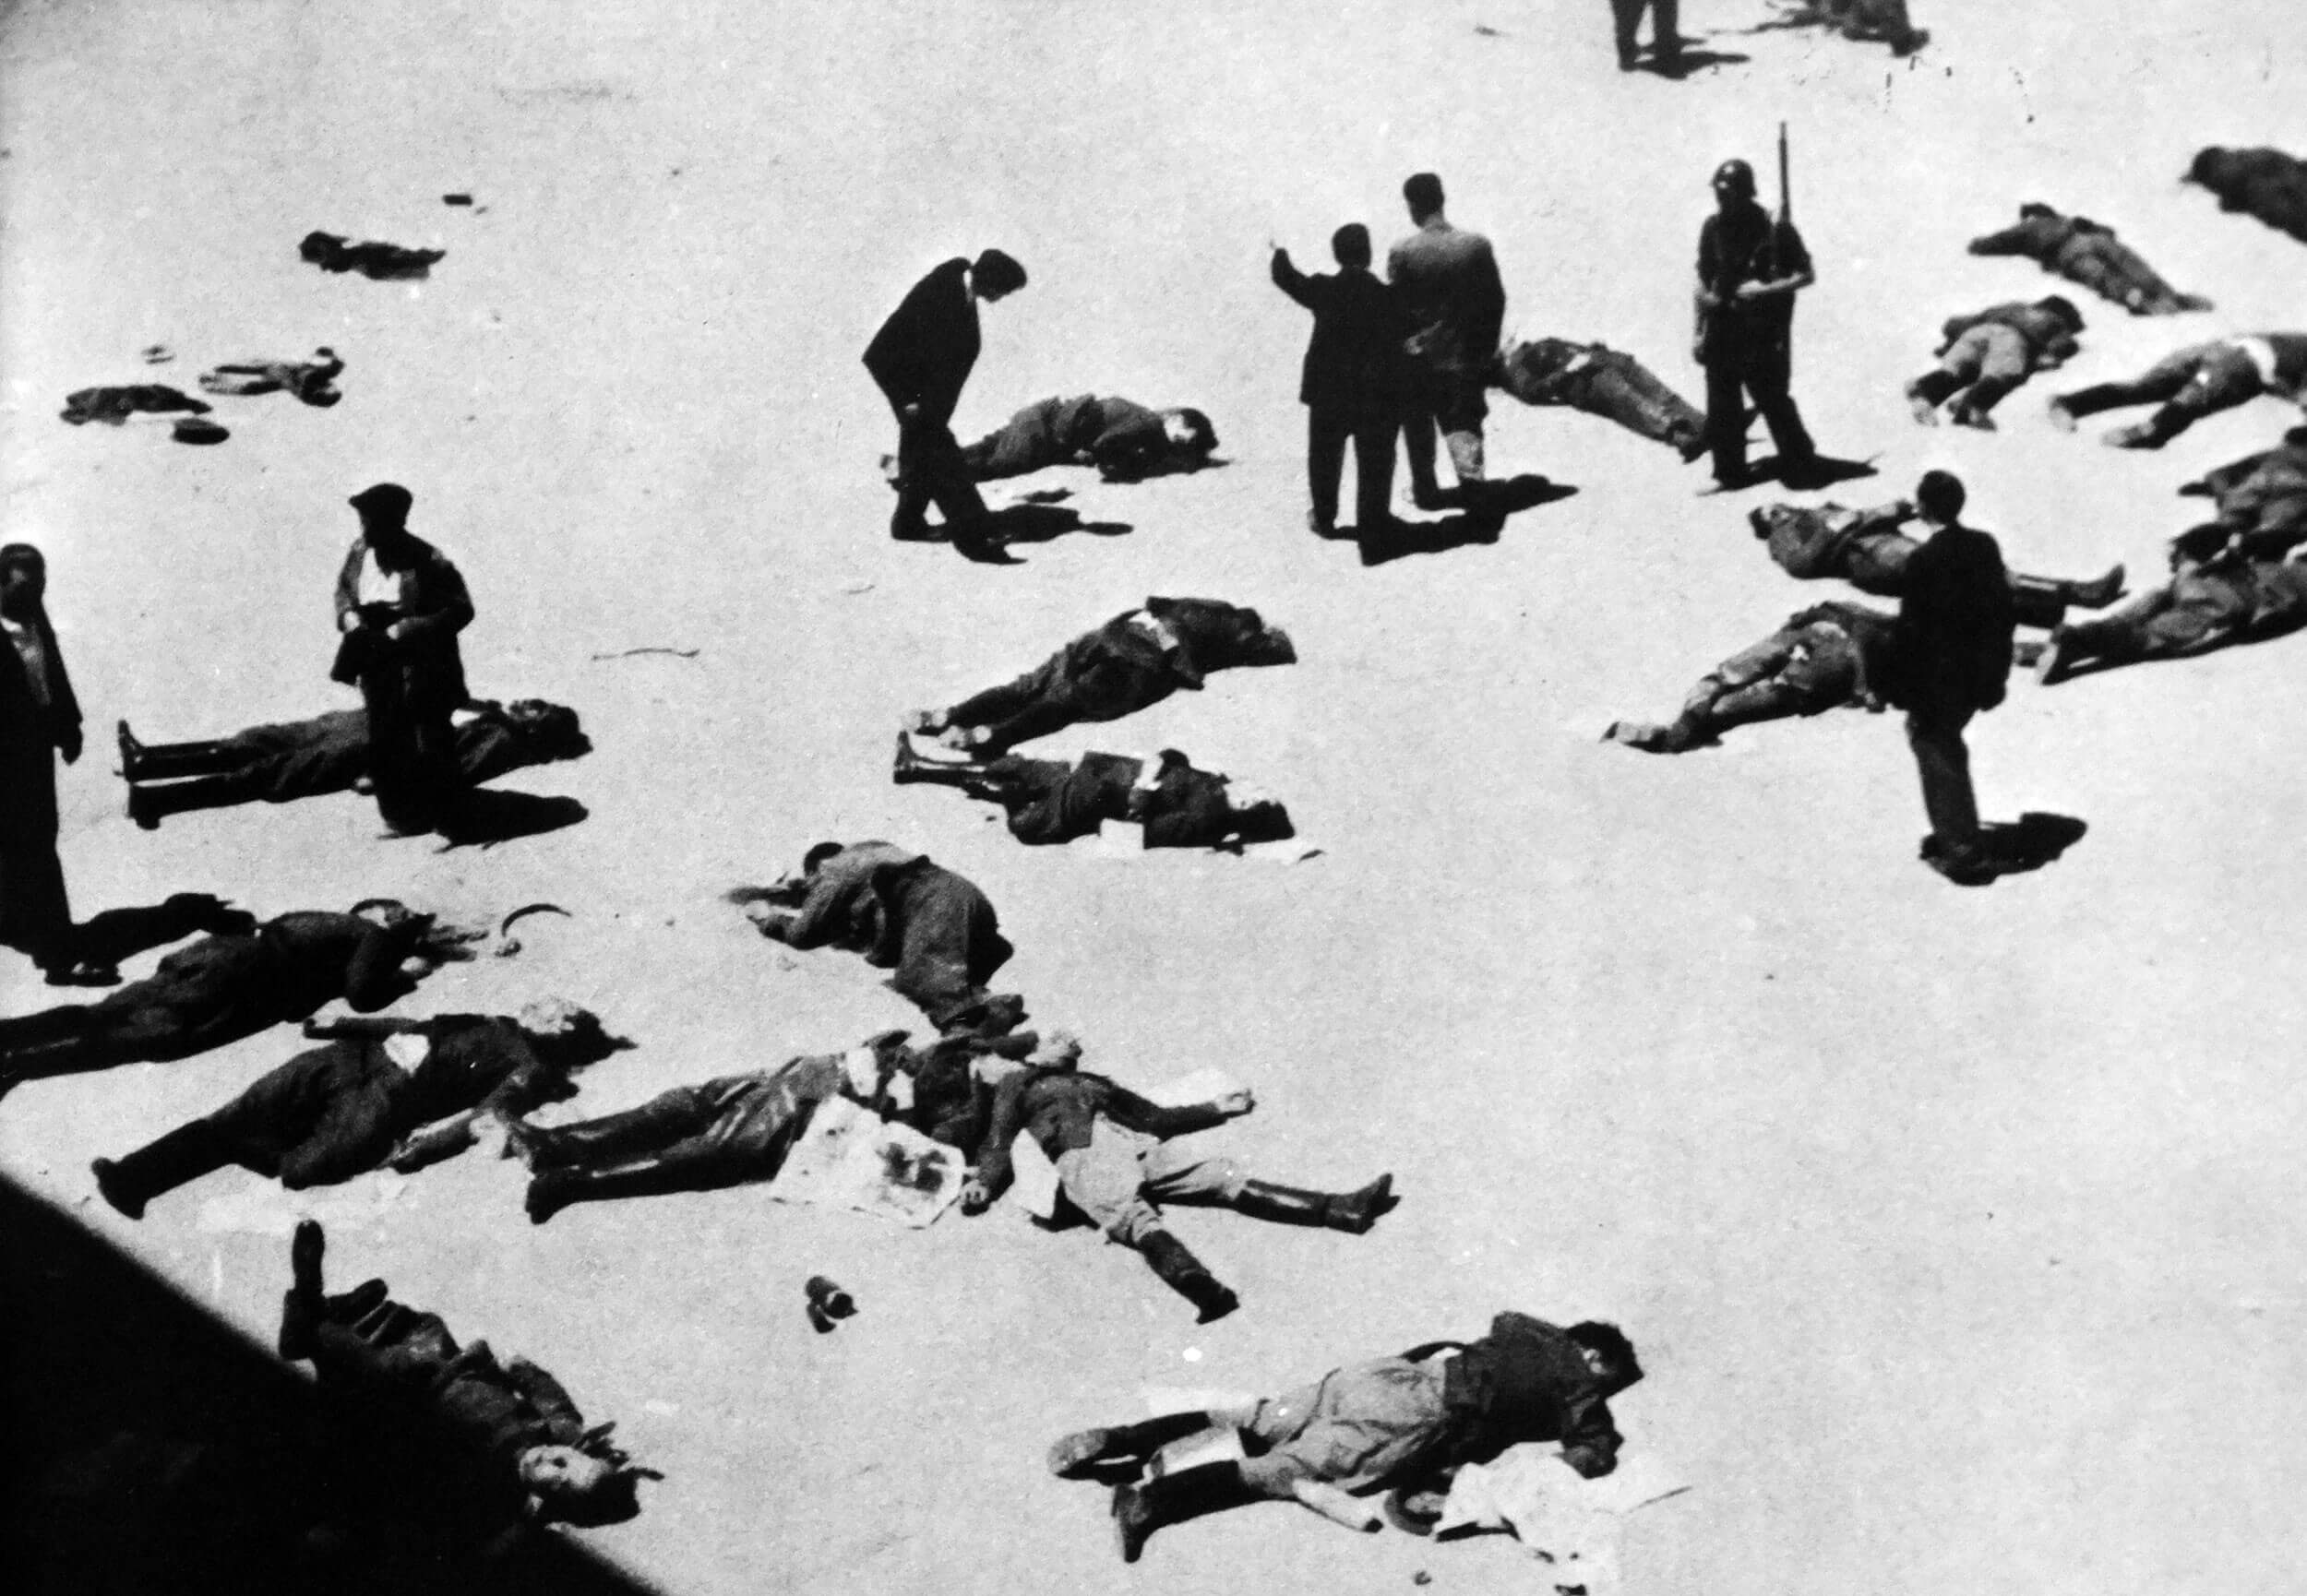 Dead people killed by ANTIFA for disagreeing with communism.